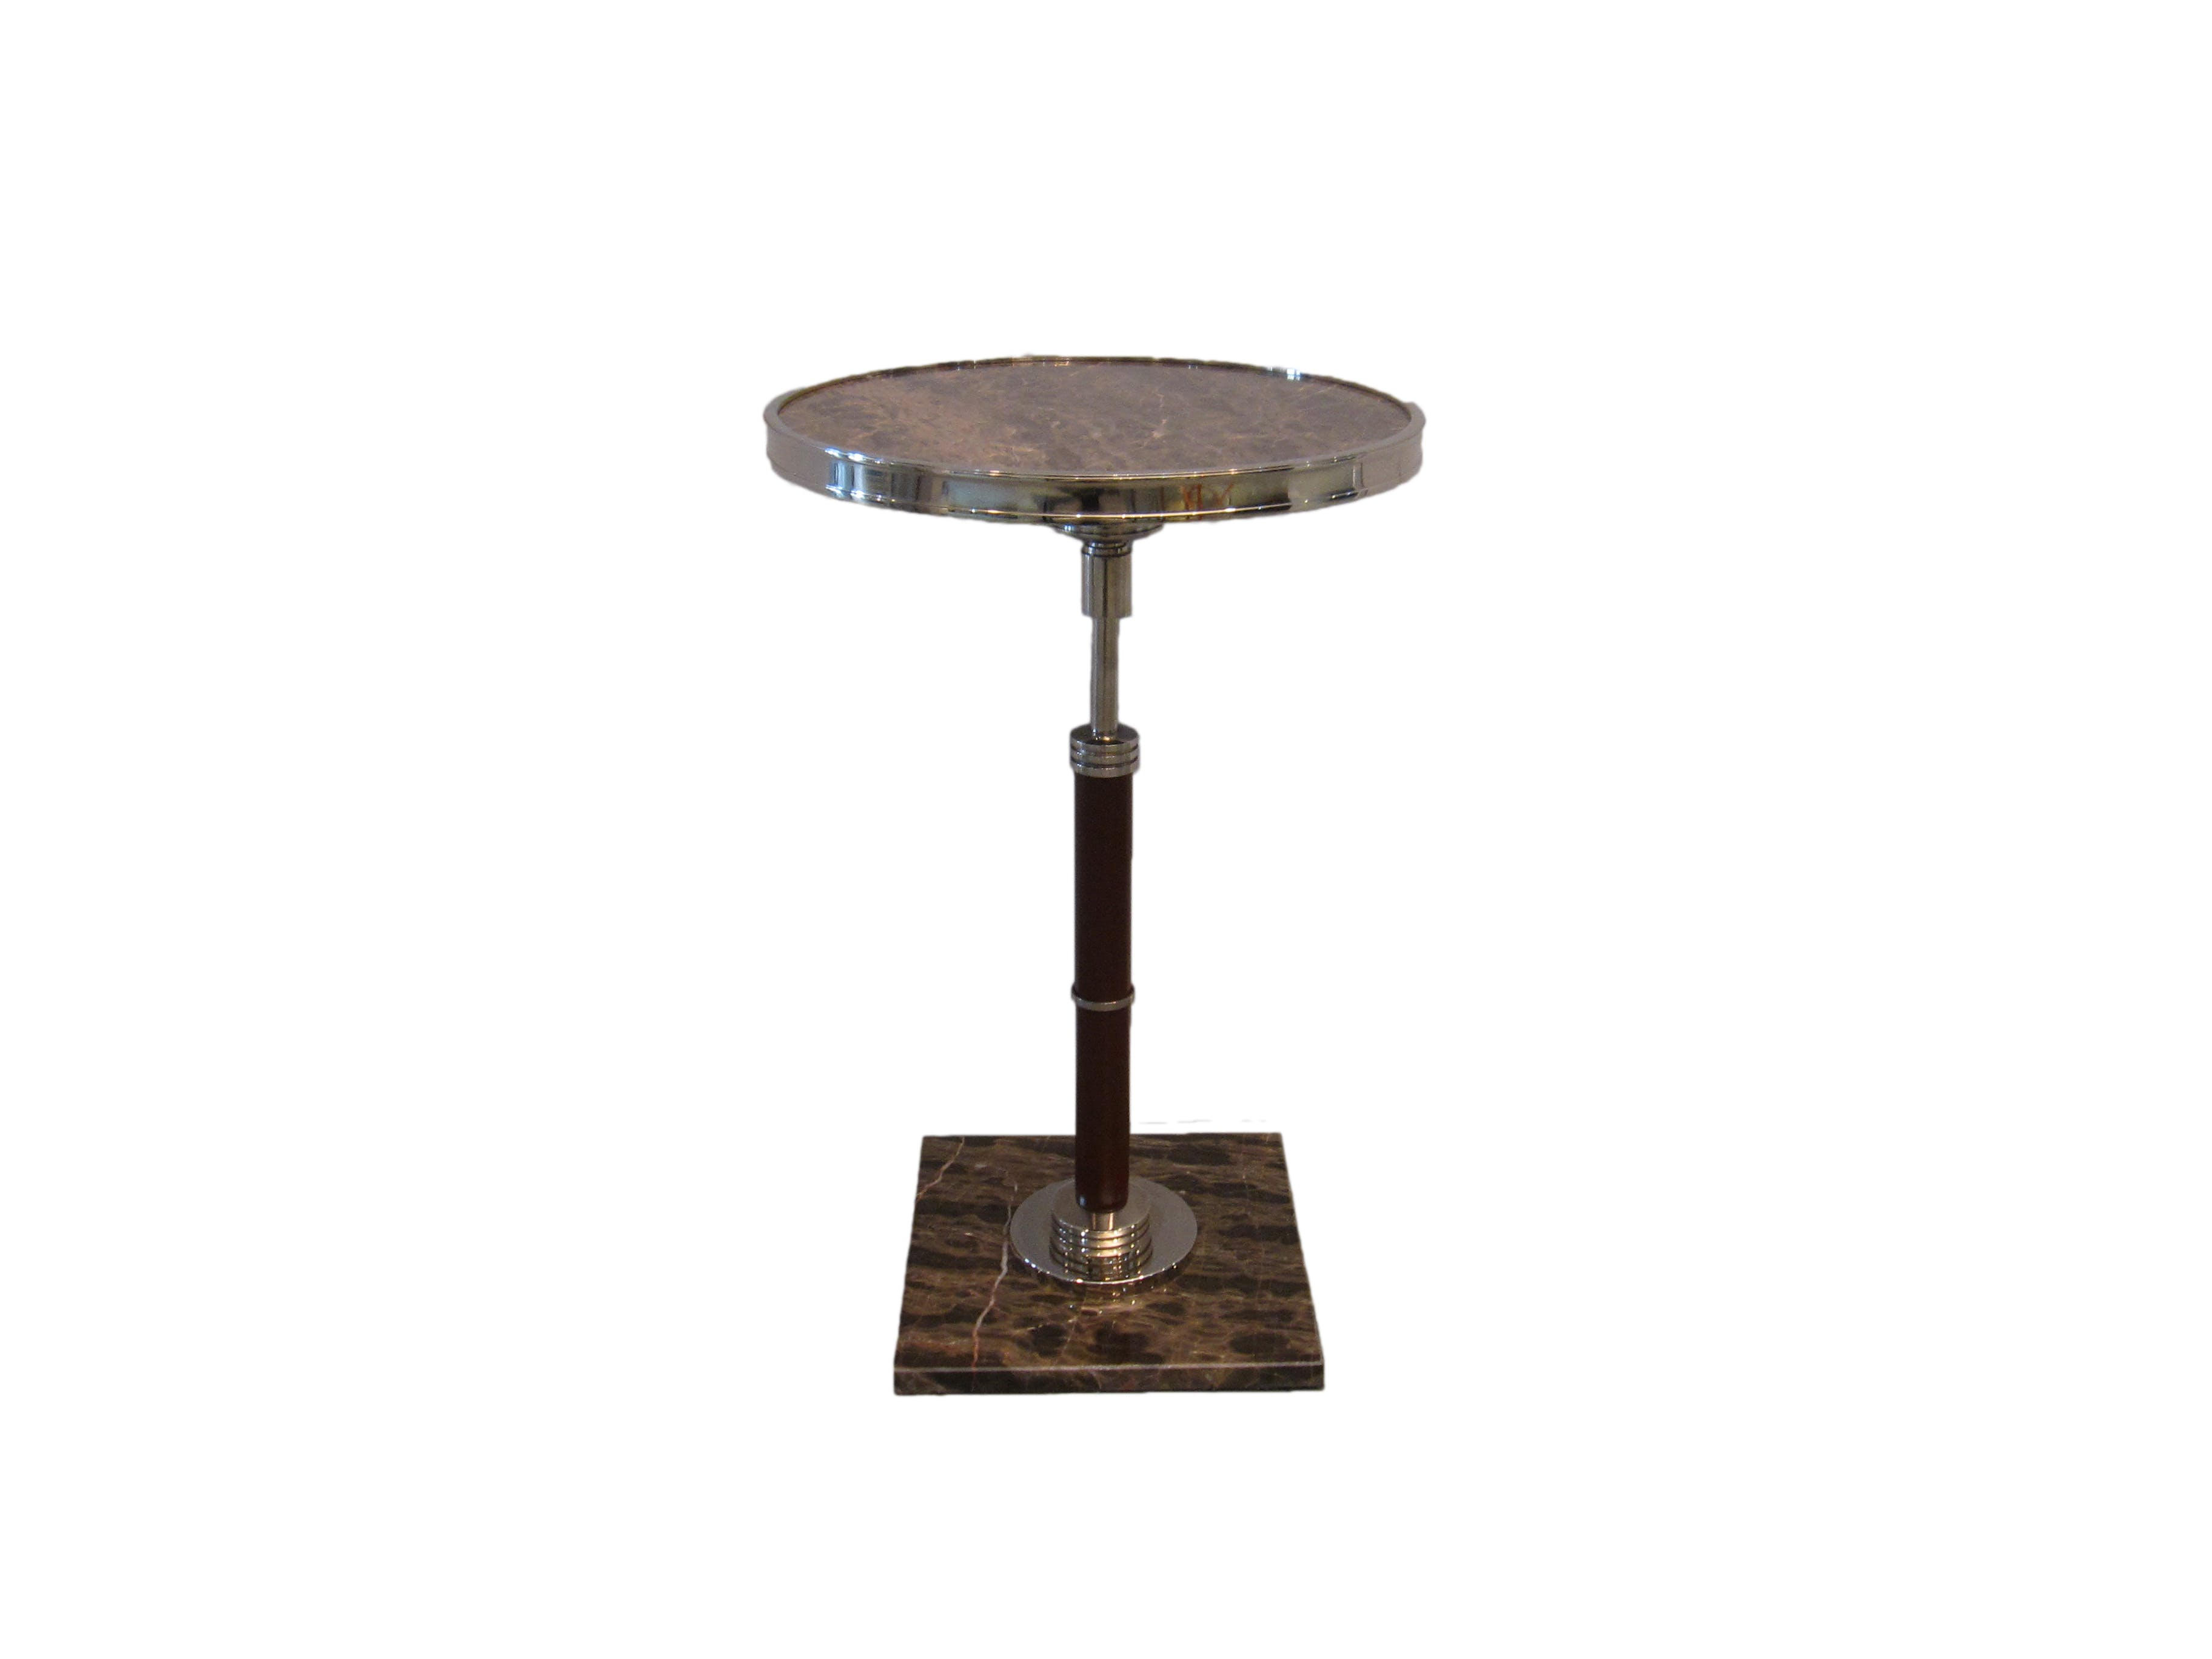 cigar drink accent side table eisenhower consignment outdoor umbrella marble top polished nickel industrial couch recliner boat lamp square tablecloths threshold furniture dining